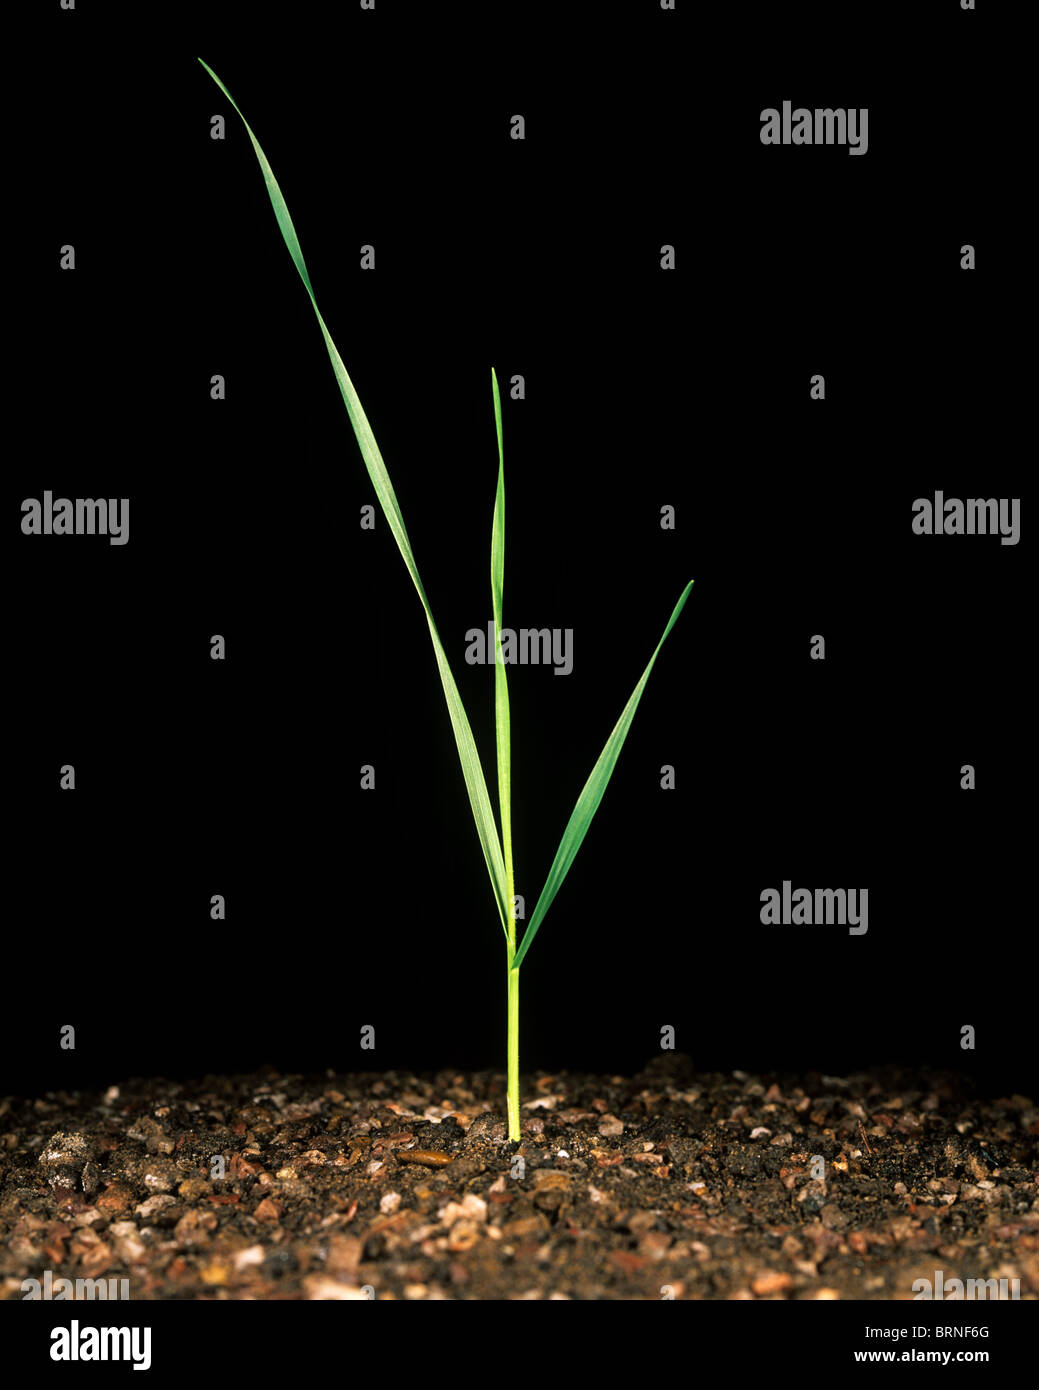 Wheat seedling with three leaves at stage 13 - Stock Image